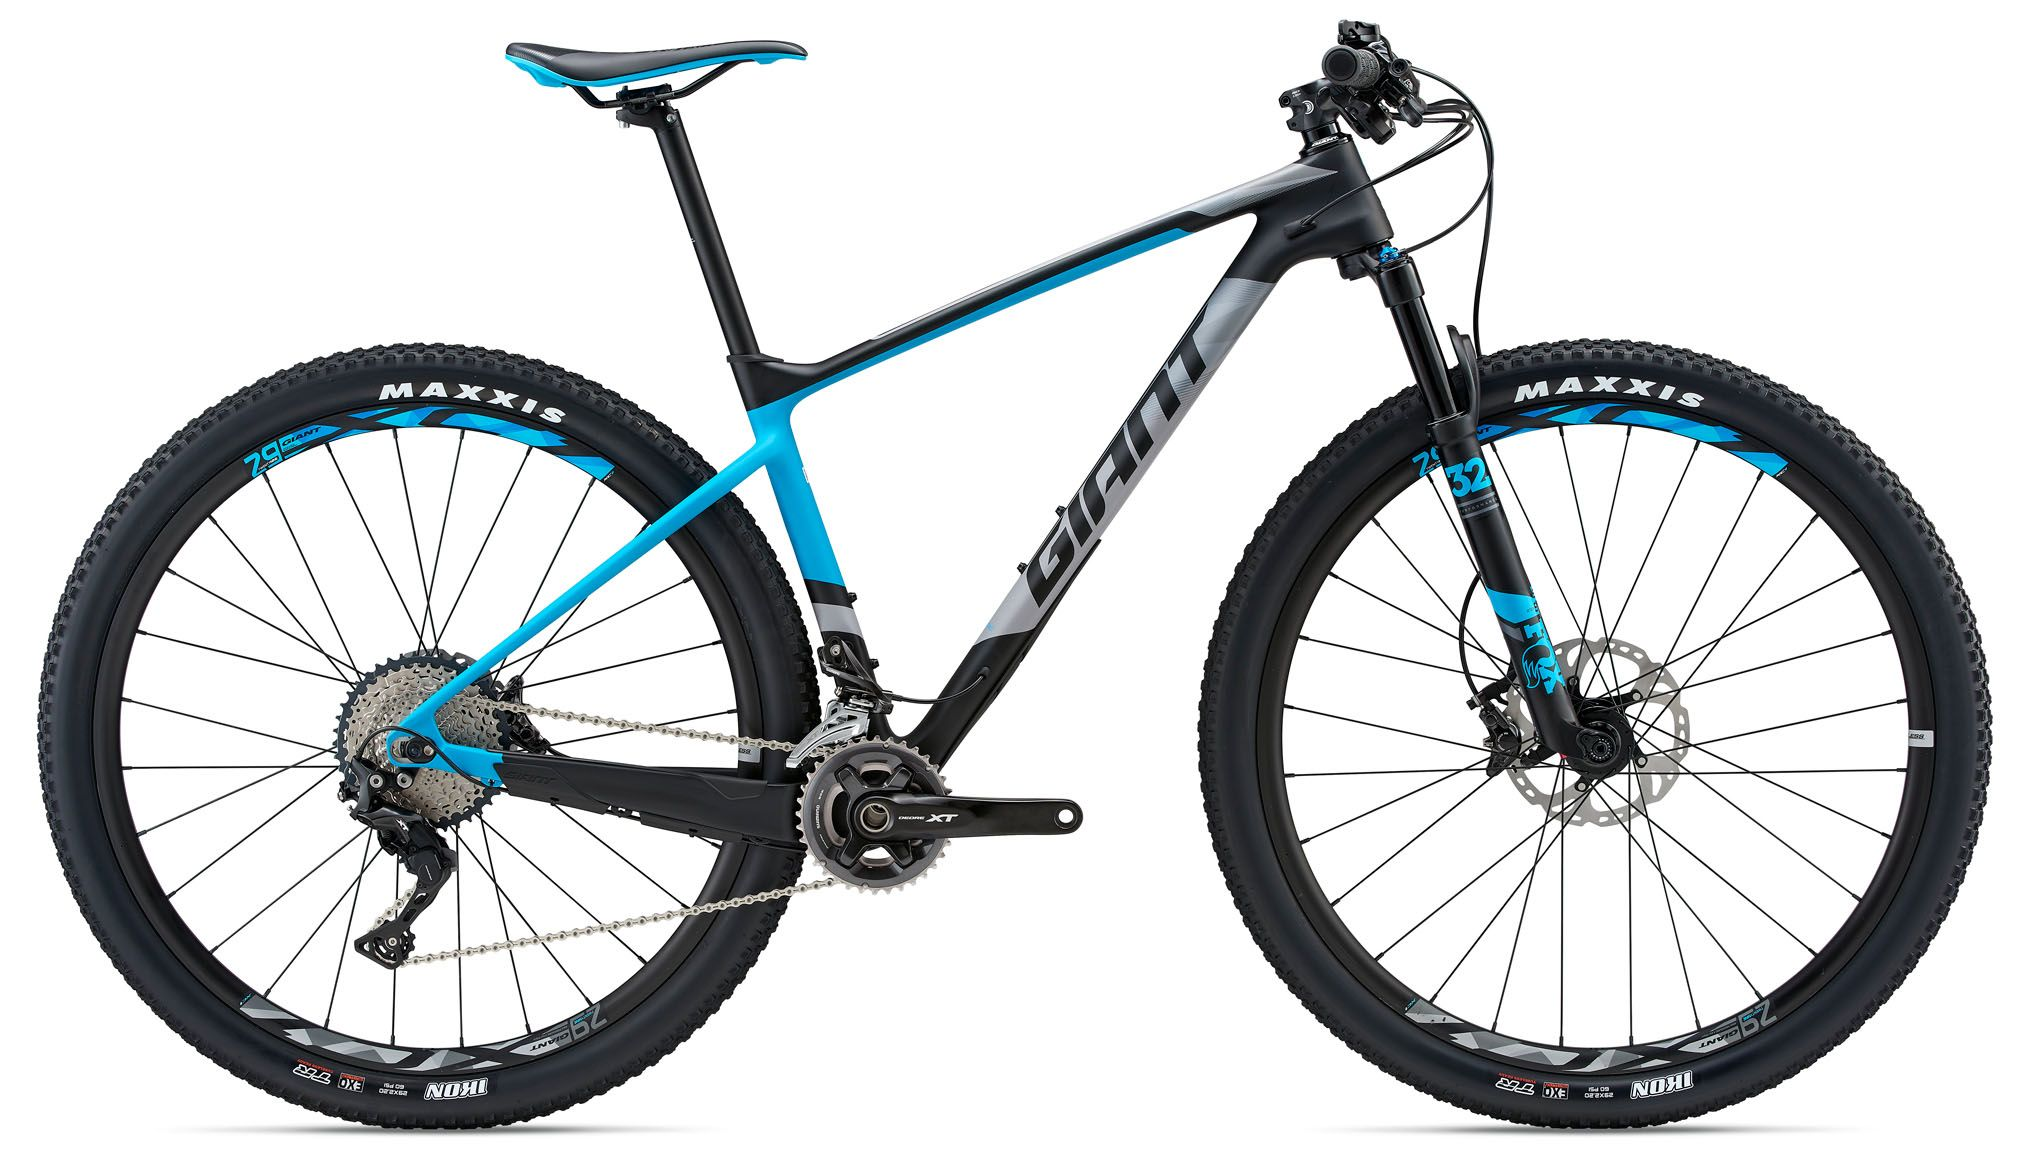 Велосипед Giant XTC Advanced 29er 1.5 GE 2018 велосипед giant xtc composite 1 2013